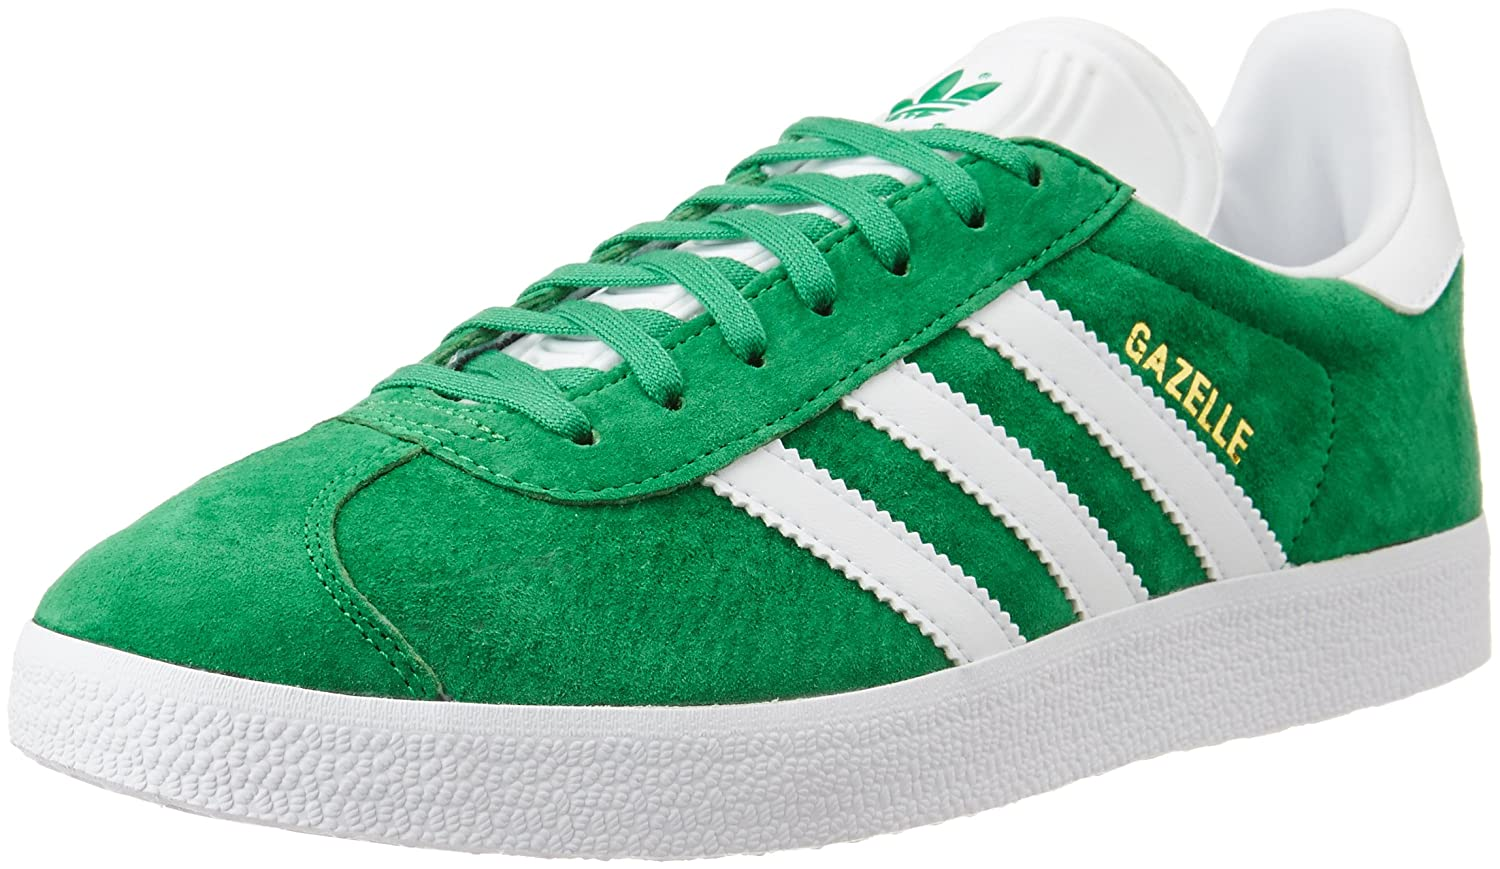 adidas Adulte Gazelle, Baskets Basses Mixte Basses Adulte Vert (Green/White Met)/Gold Met) 7f445d8 - shopssong.space